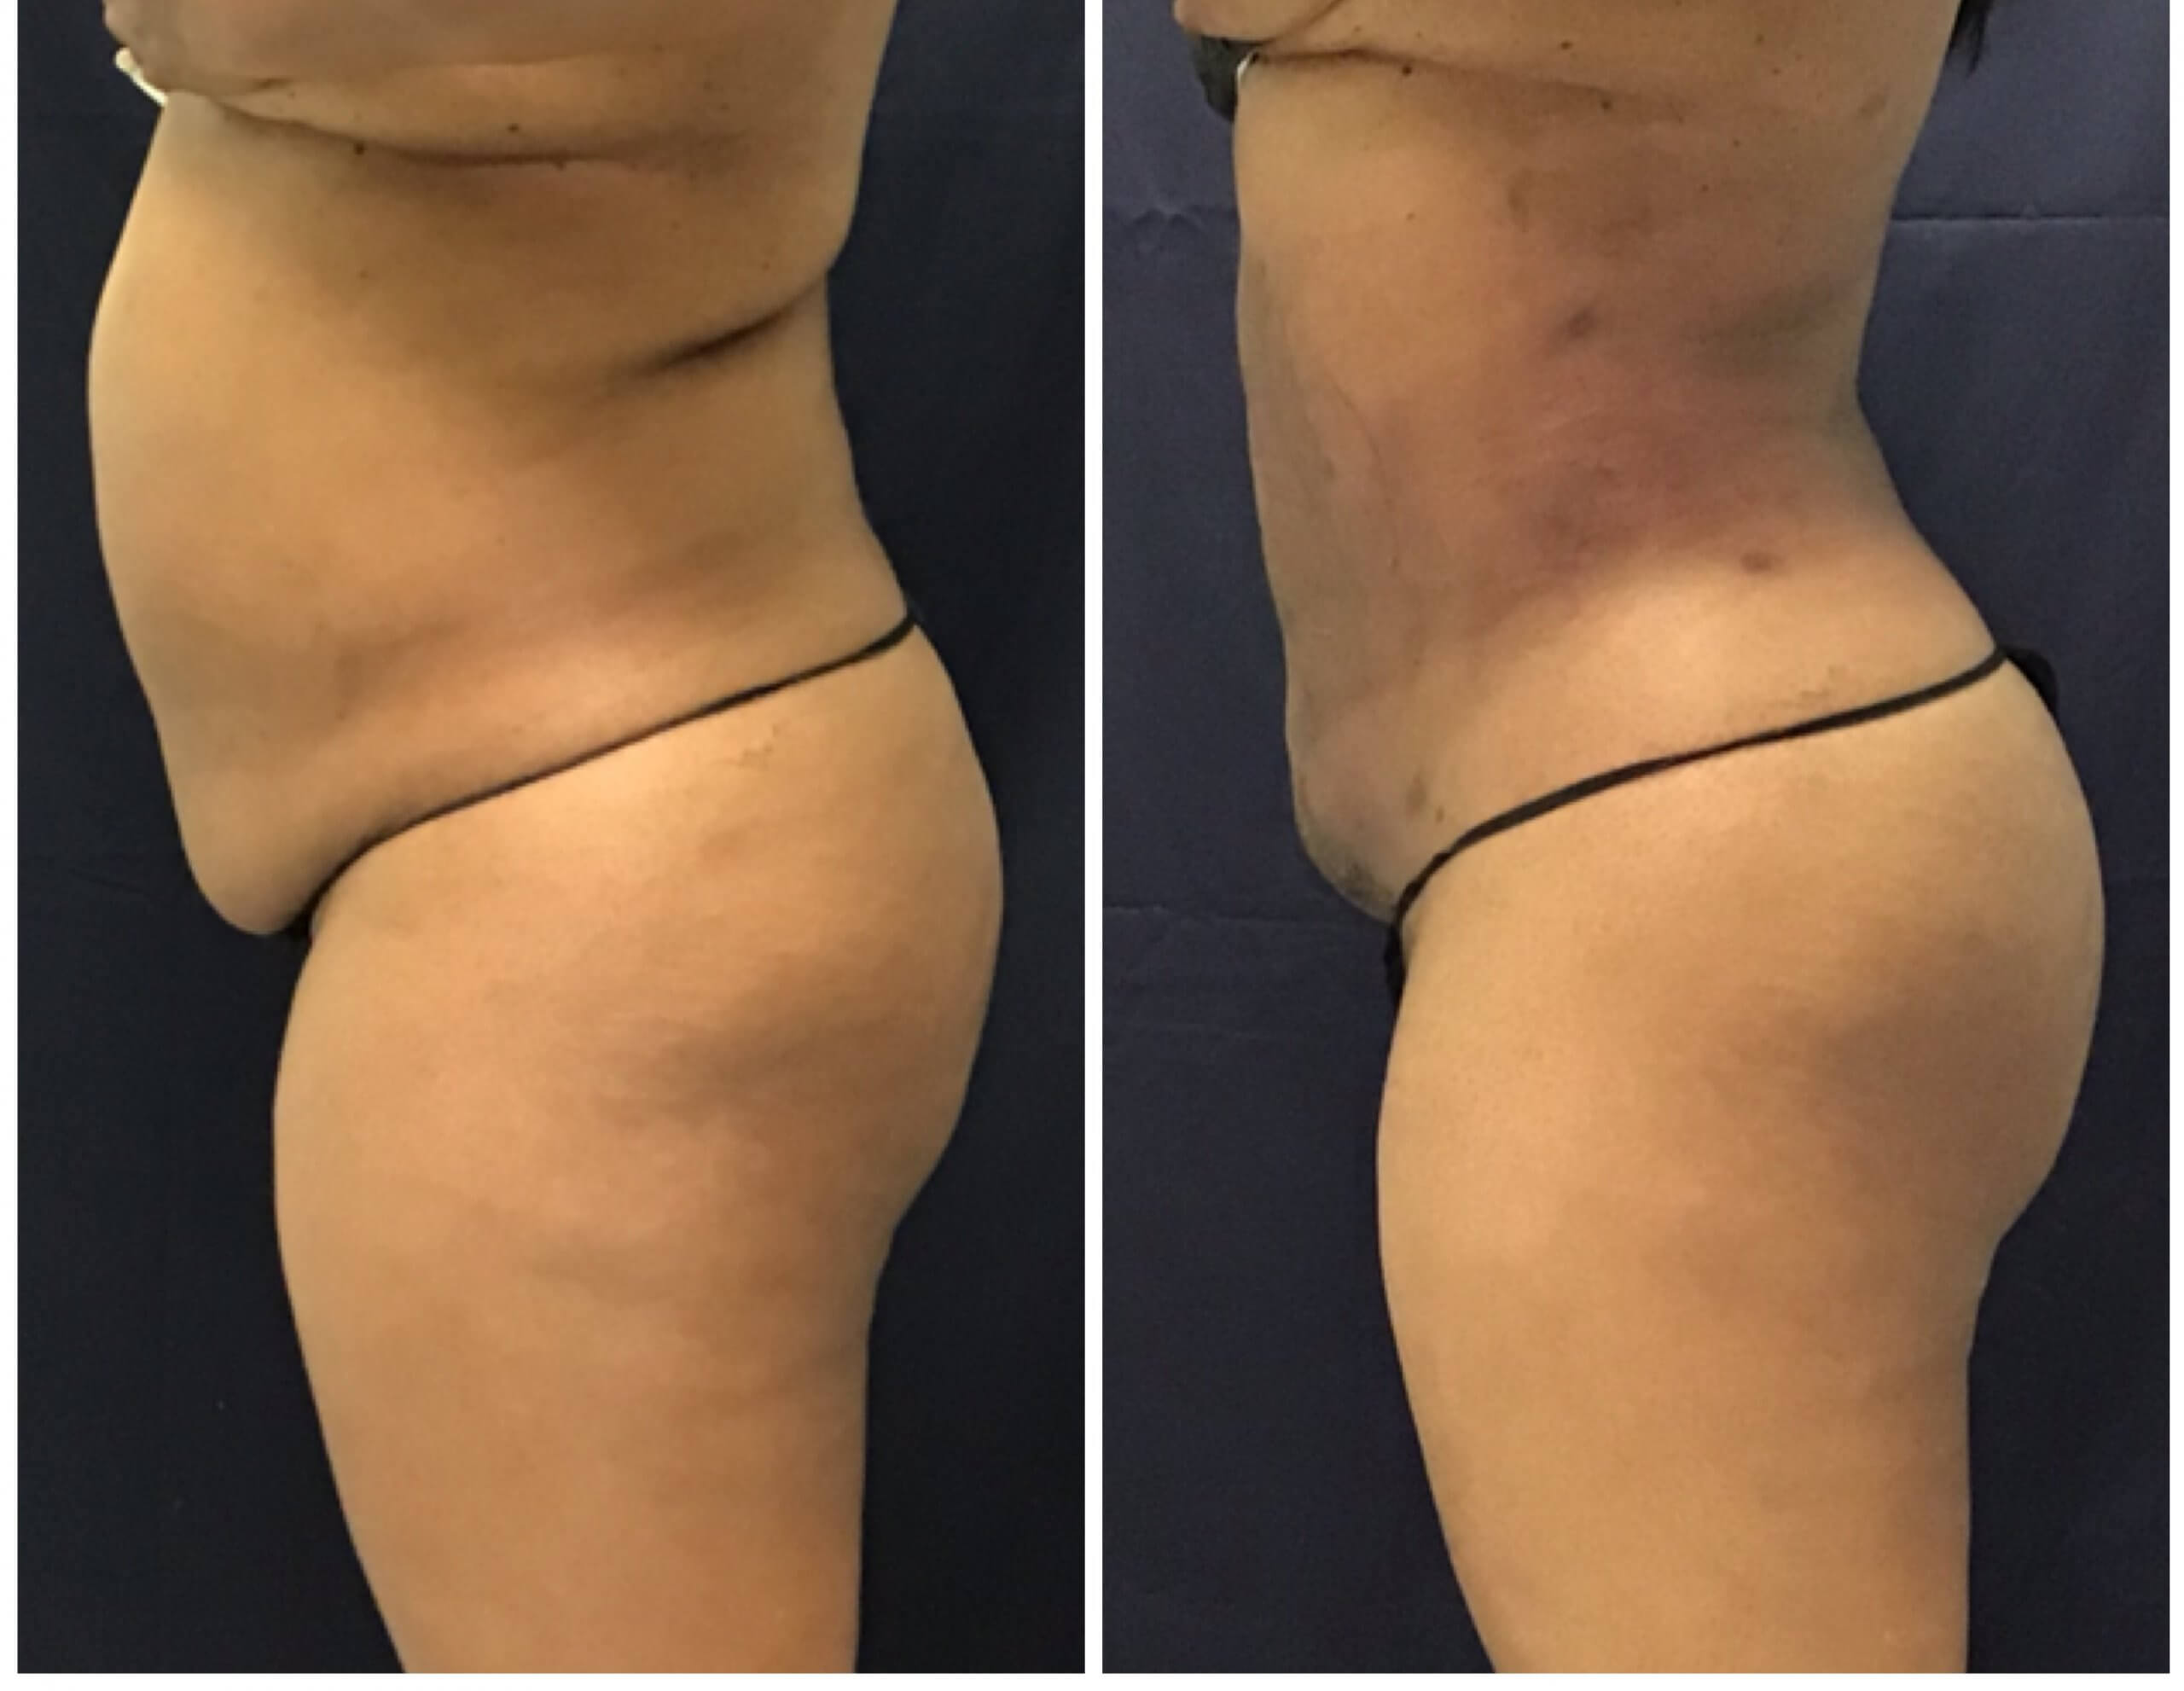 Before and after 6 Weeks PureLipo with ThermiRF for skin tightening and fat transfer to the buttocks (Brazillian Butt Lift)